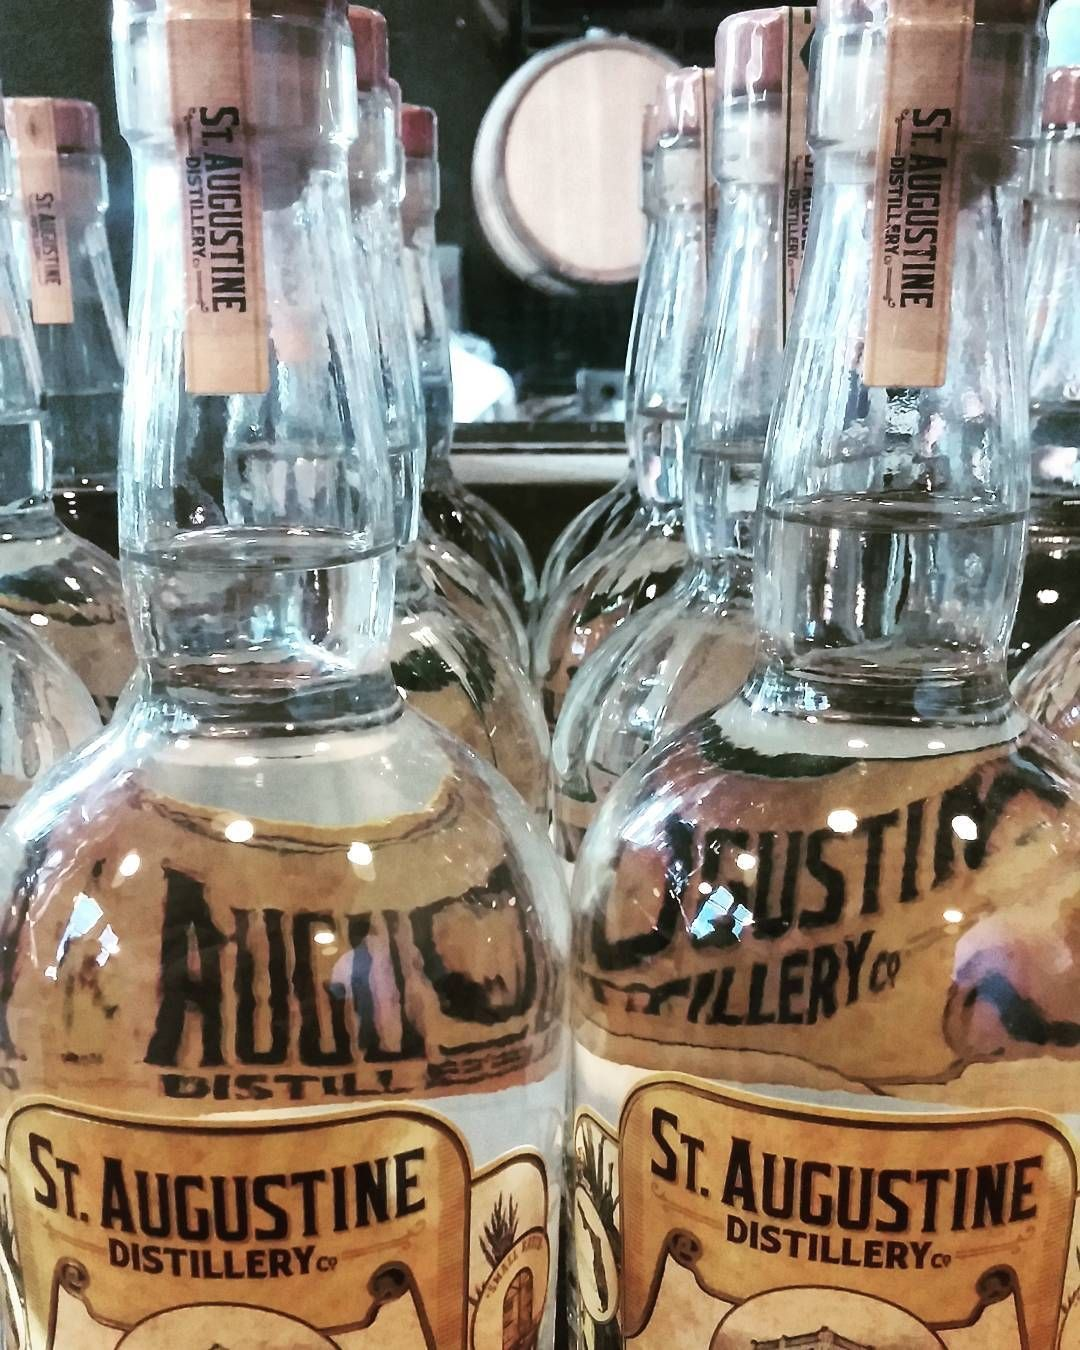 Everyone needs to take a trip to #StAugustine and take a tour of the St. Augustine #distillery for a good time and good #spirits by chef_mak